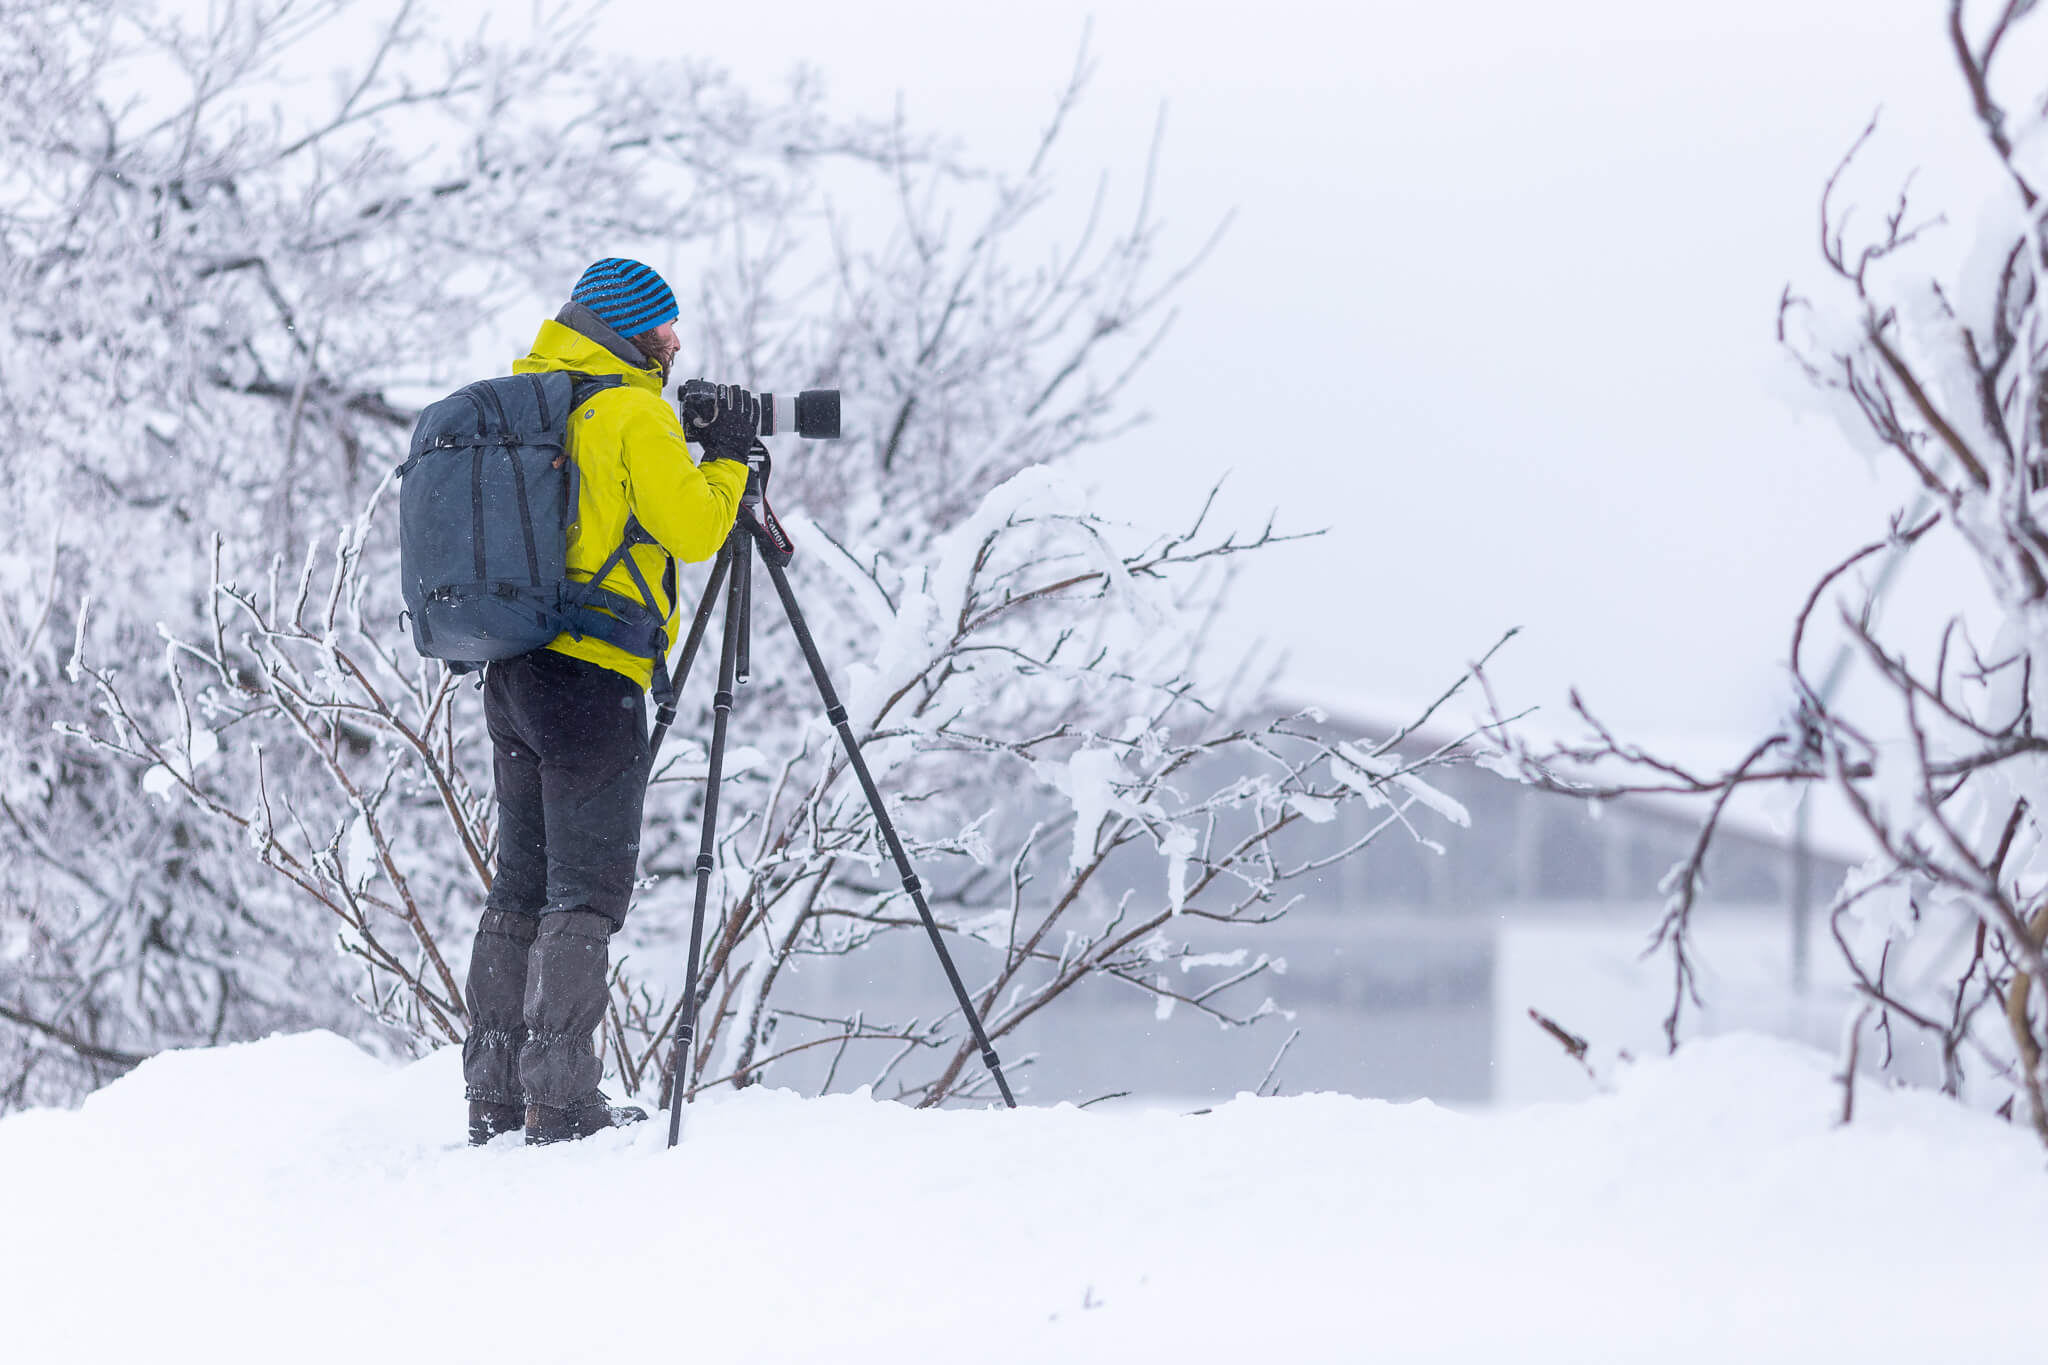 Winter Landscape Photography in the Czech Republic - Images and Words by Vaclav Krizek